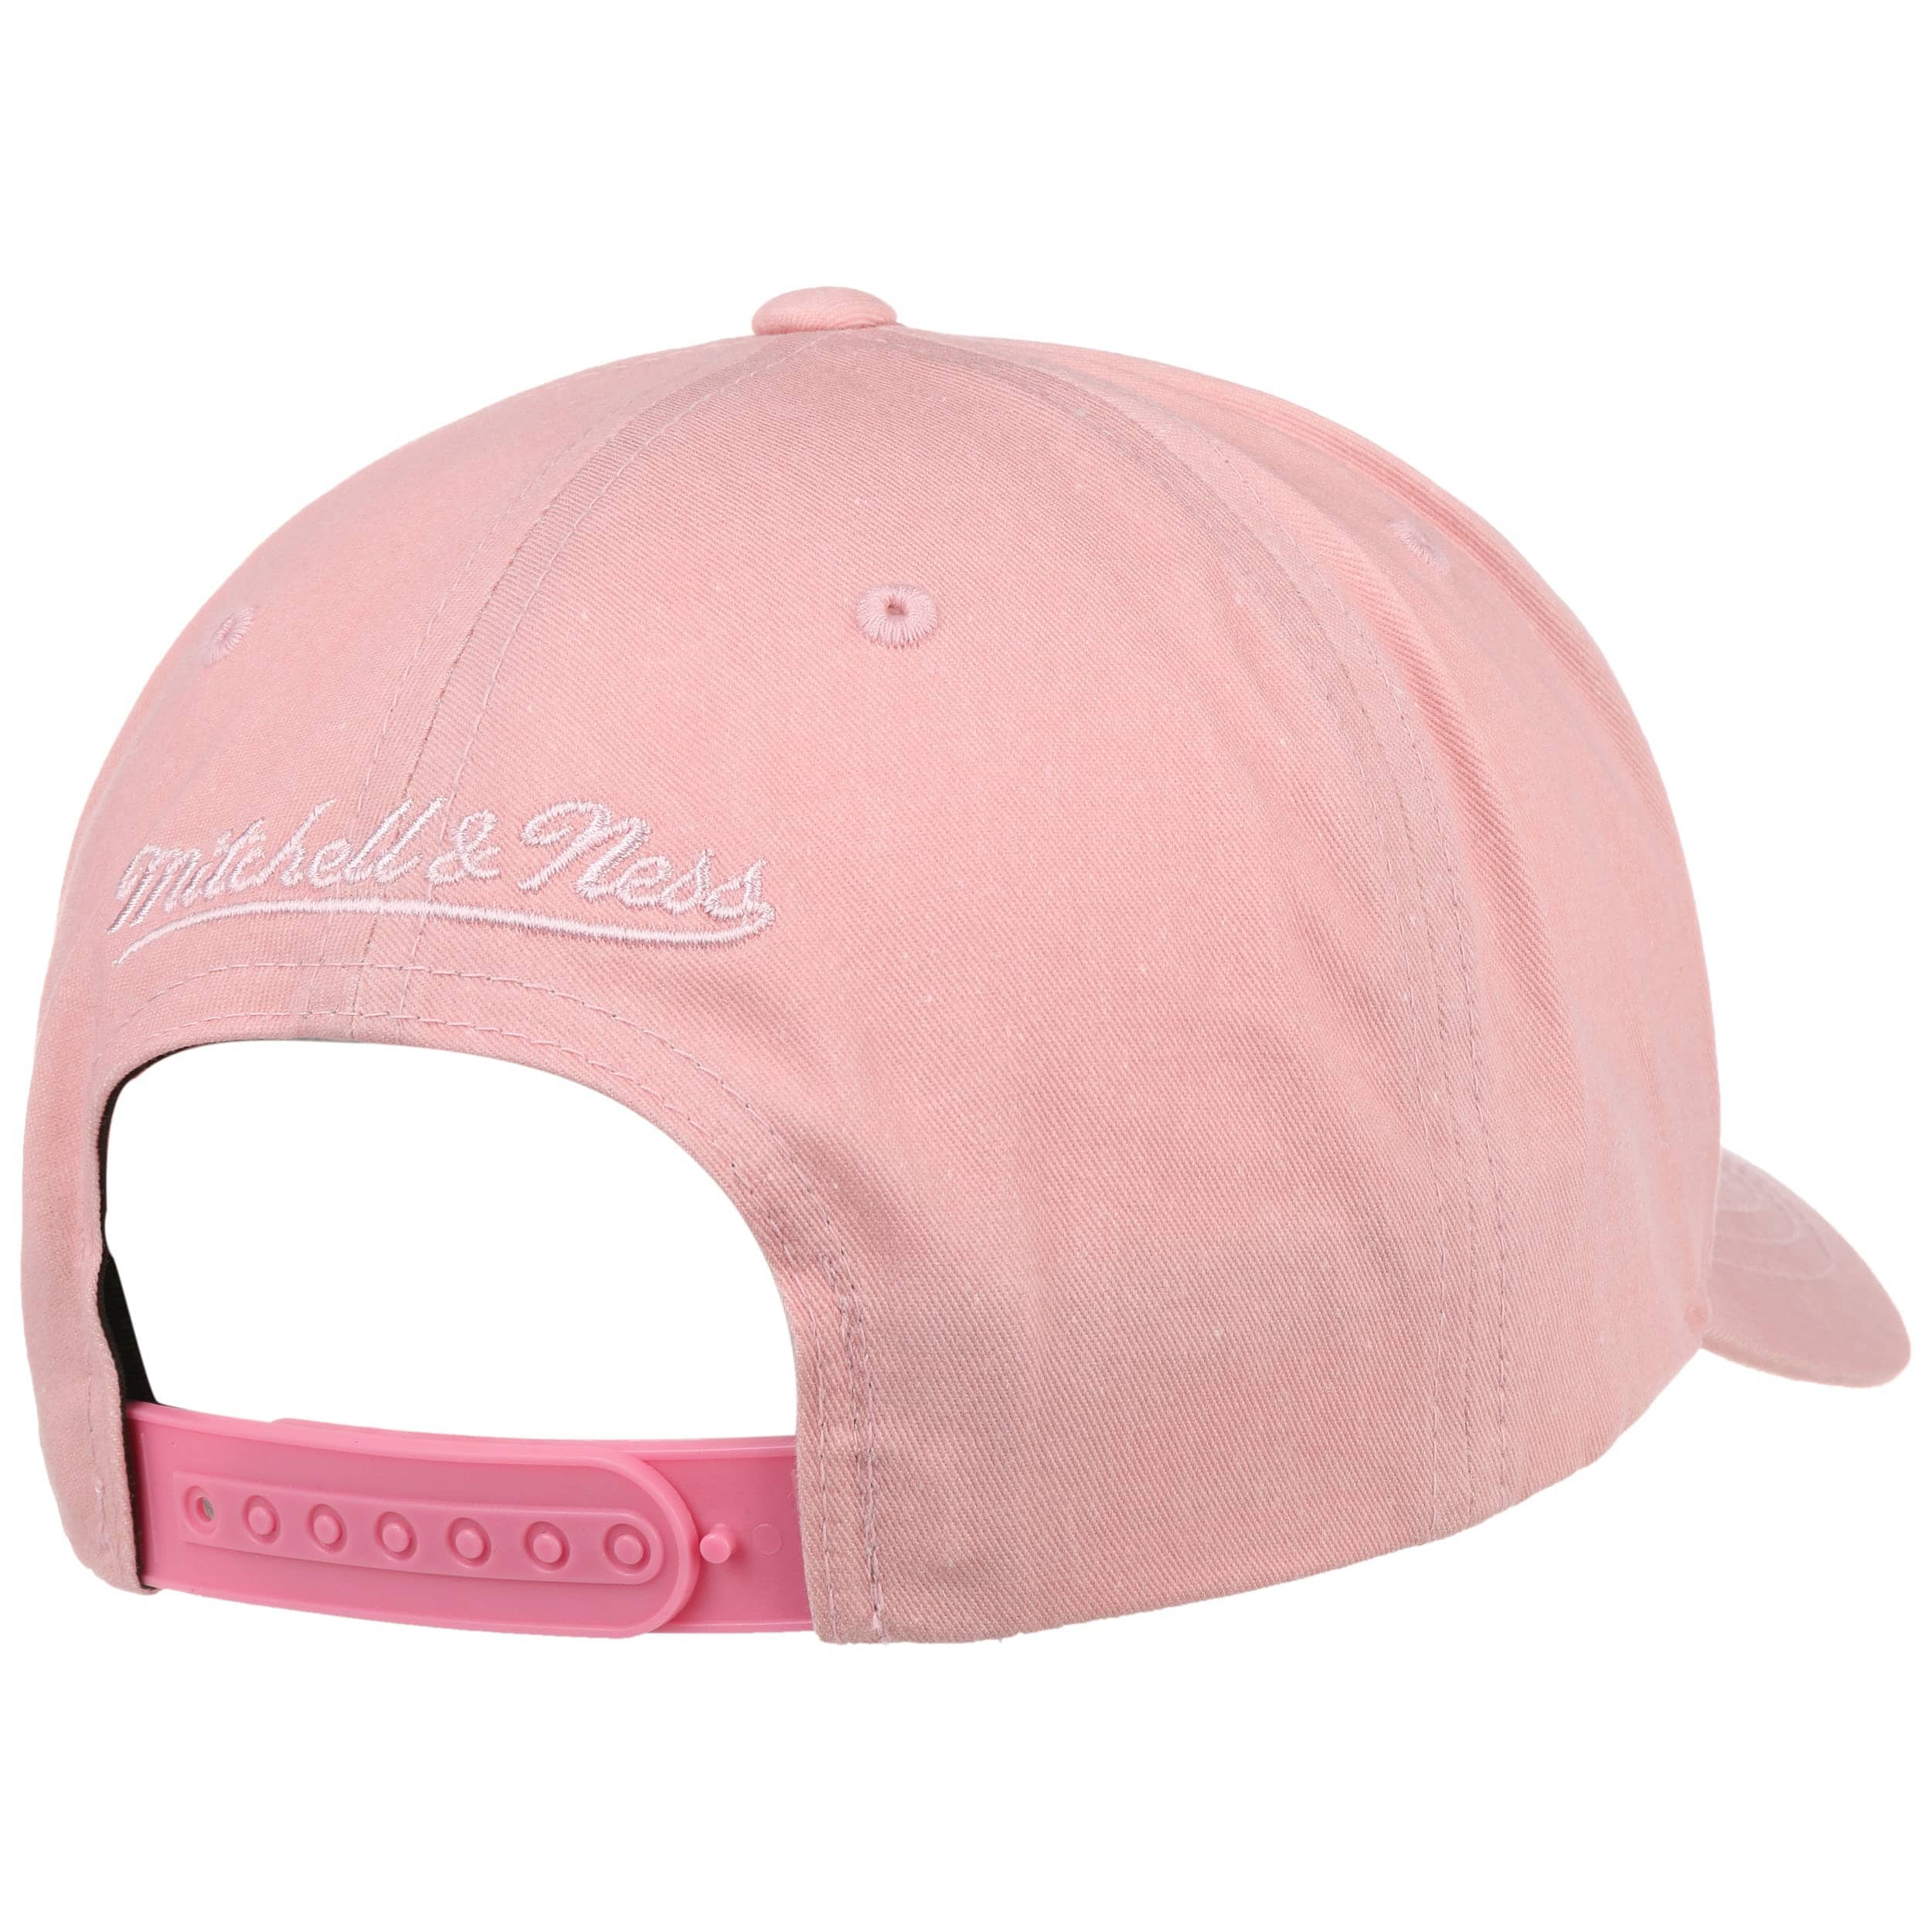 110 Heather Spurs Cap by Mitchell   Ness - pink 1 ... 08f23978a377